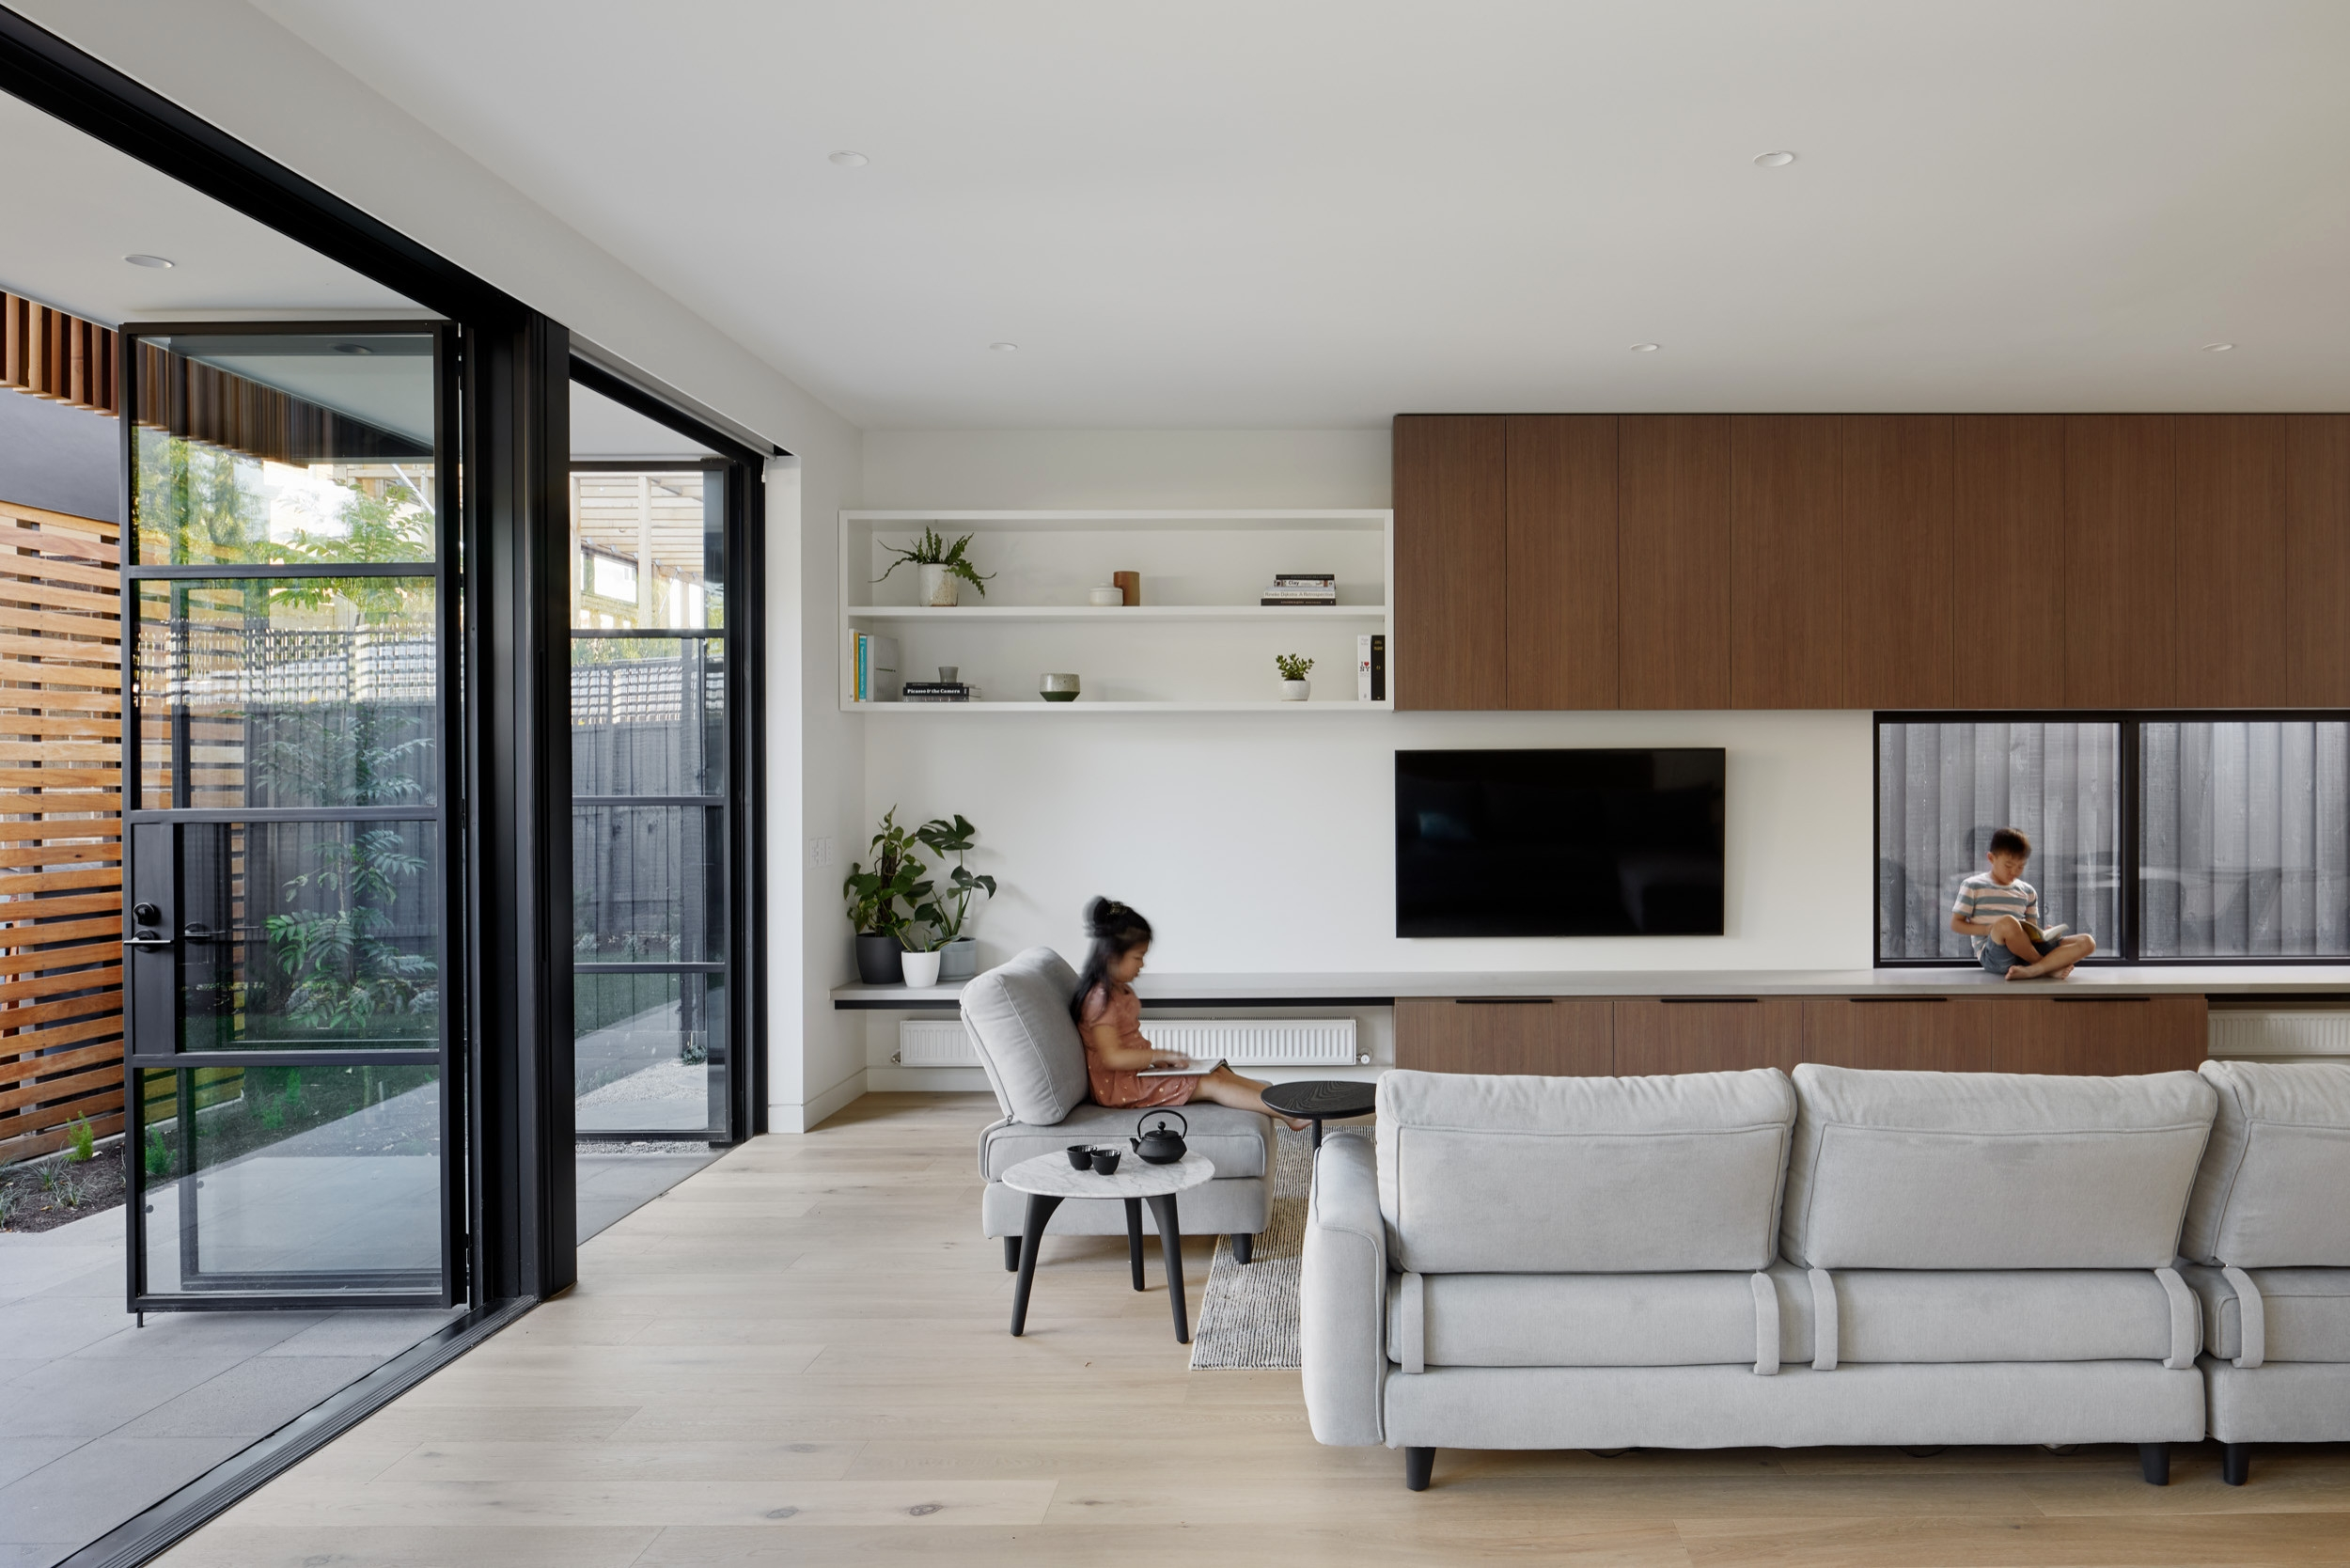 75 Beautiful Modern Living Room Pictures Ideas September 2020   Modern Living Room With Stairs   Stylish   House   Mansion   Dining Room   Sleek Modern